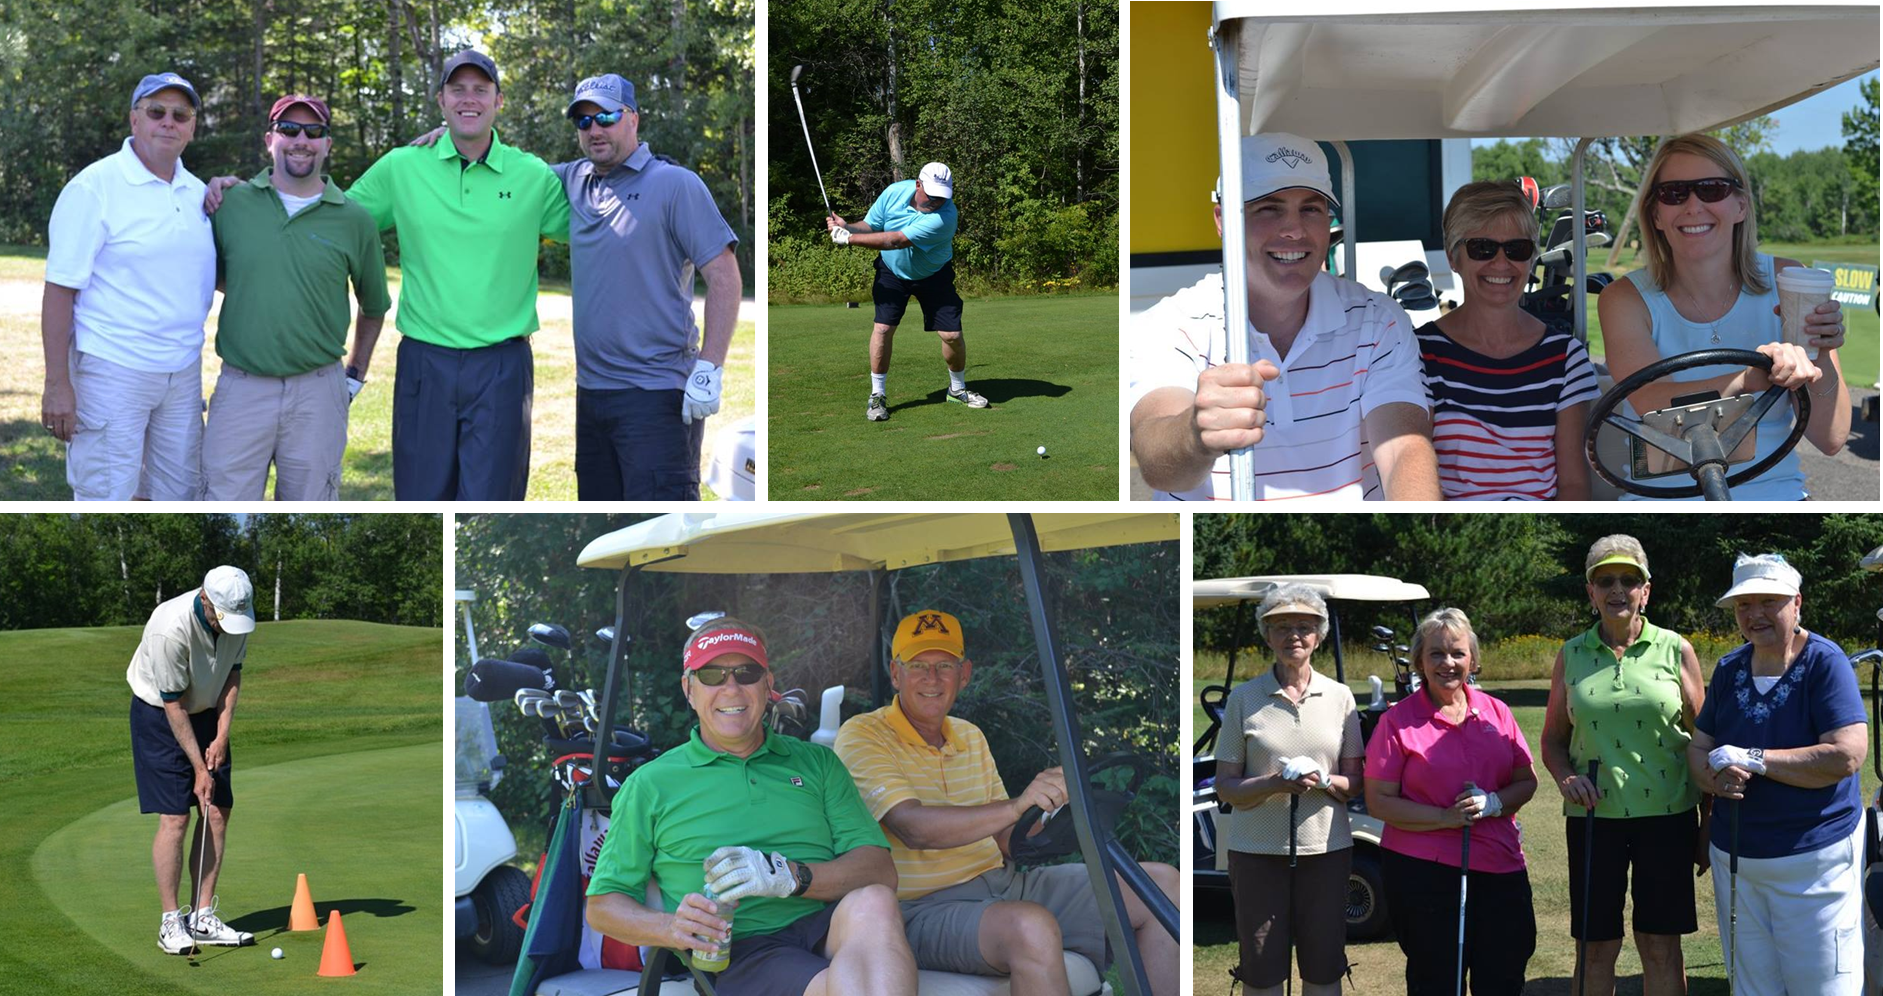 Click the collage to view more photos from this wonderful event!